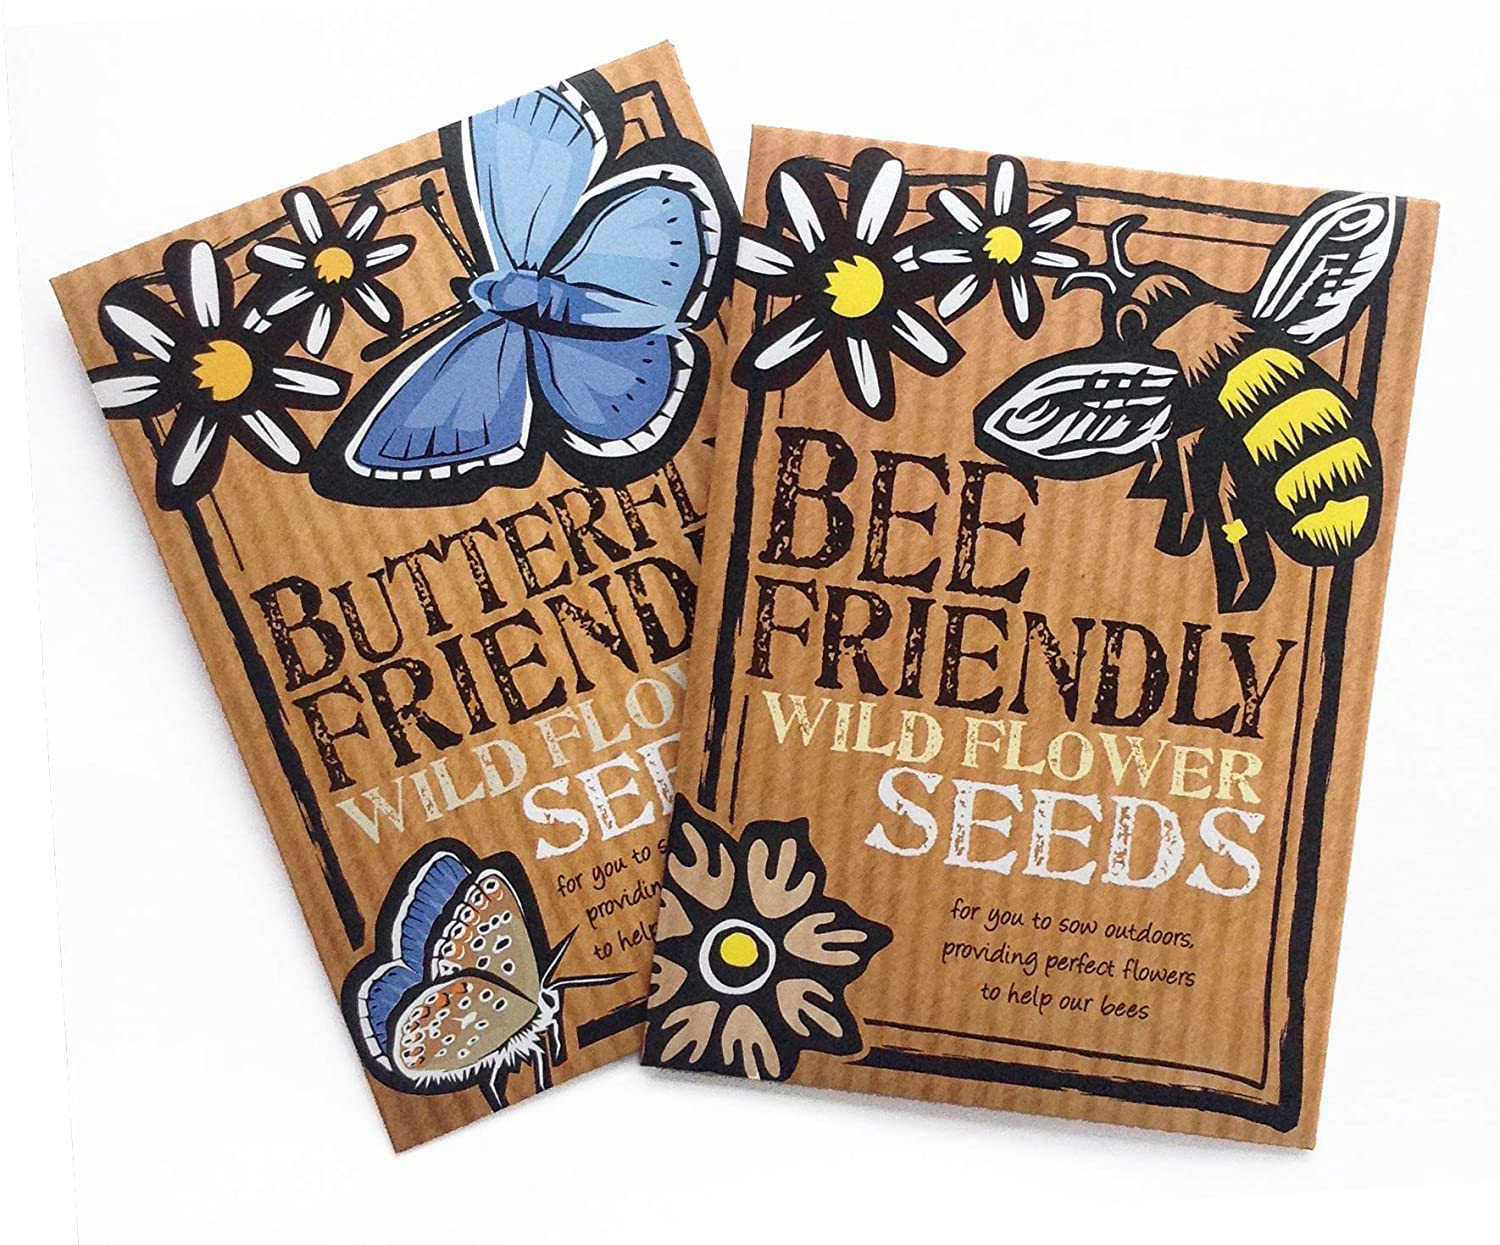 Bee and Butterfly Friendly Wild Flower Seeds Duo Pack - Beautiful Flowers in Many Colours, Great Gardener Gift. Over 1000 Seeds Per Packet, RHS Perfect for Pollinators Mix. Friendly Seed Company